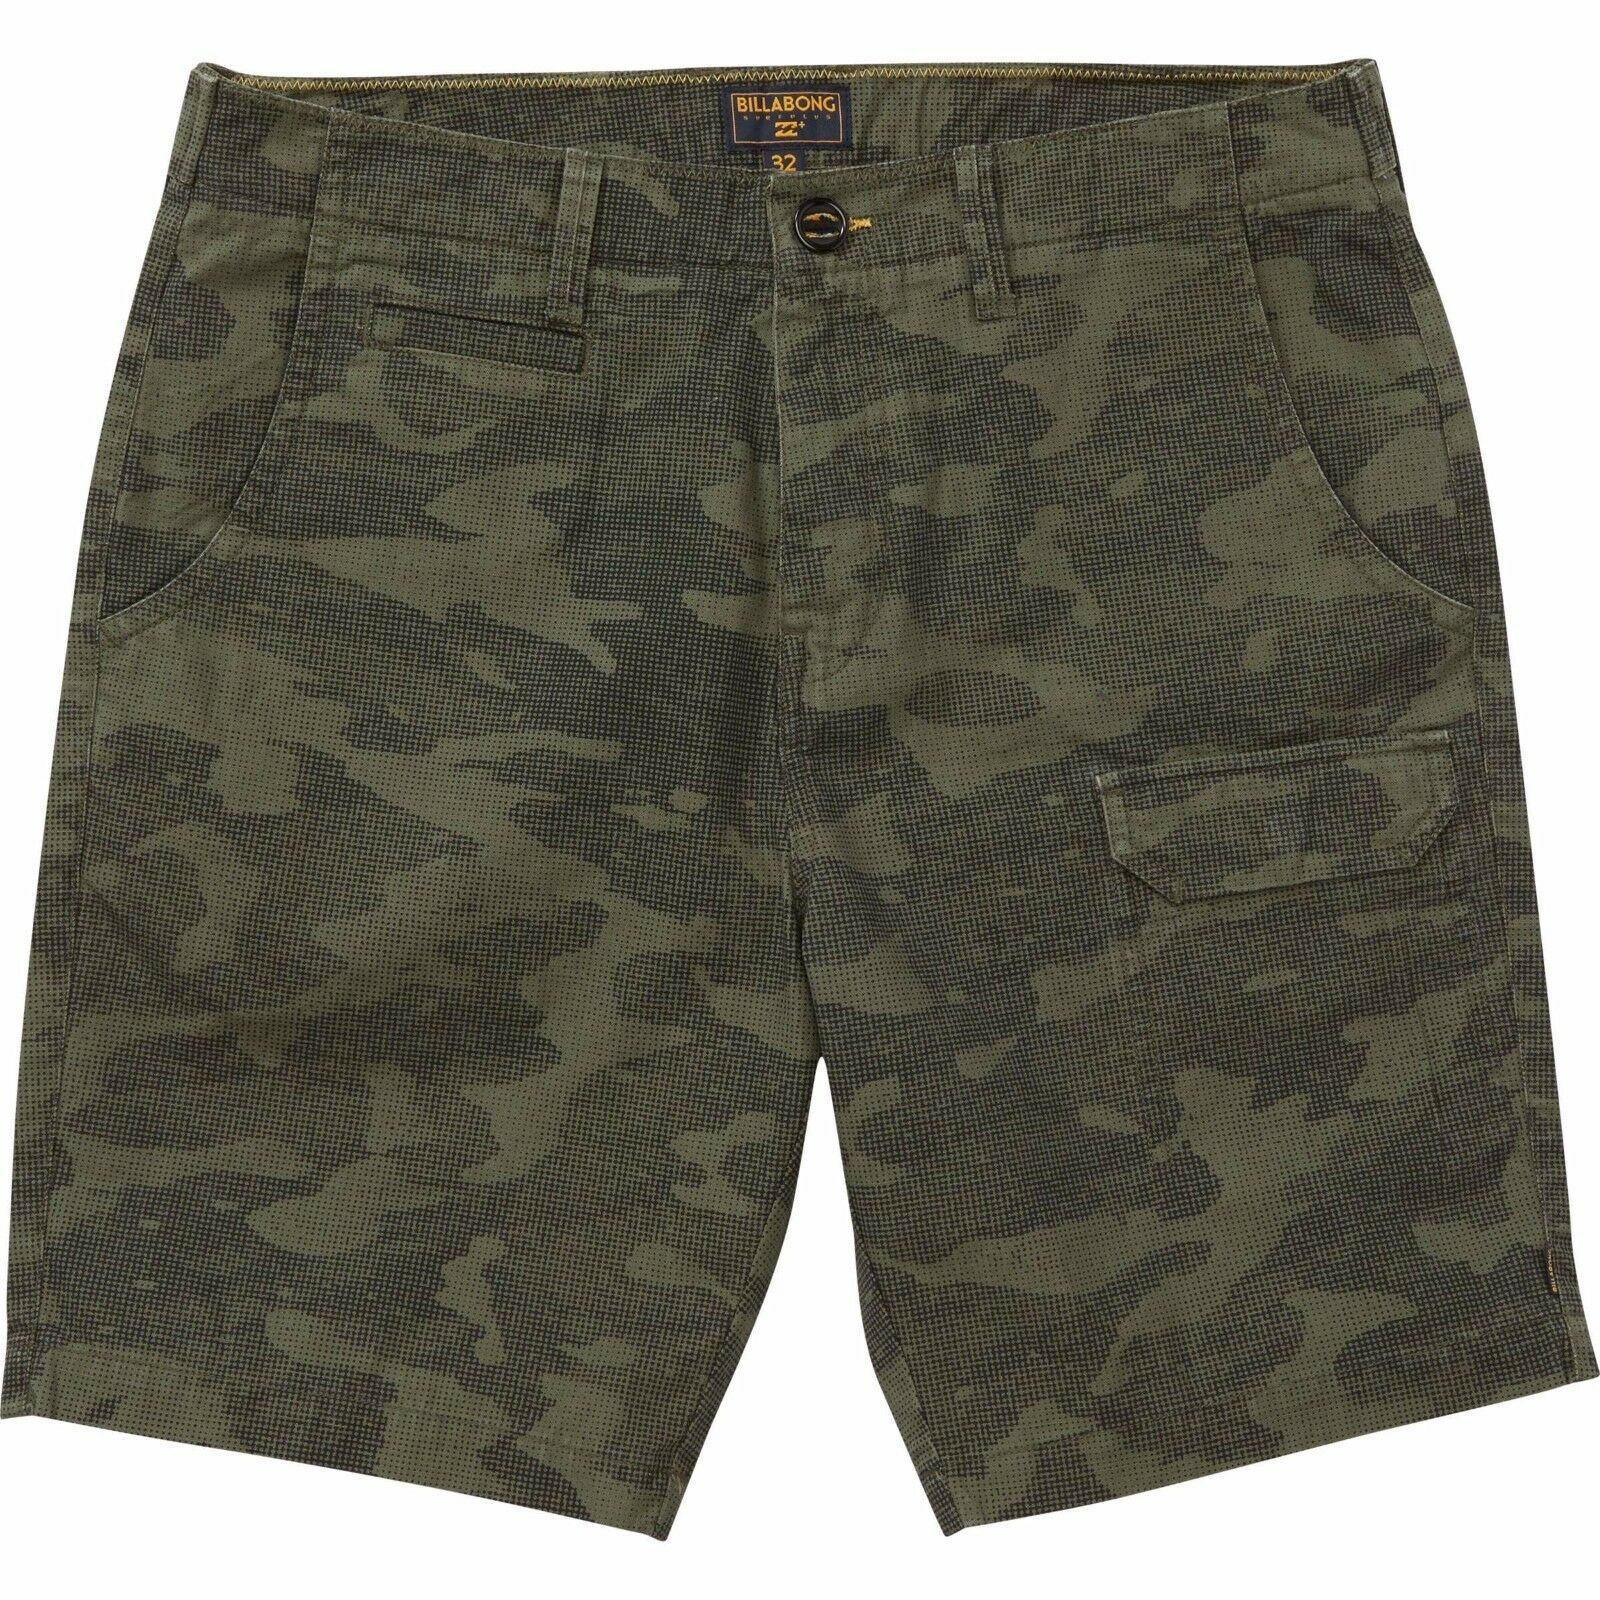 2016 NWT MENS BILLABONG VANDERBERG SHORTS  32 fatigue camo slub canvas